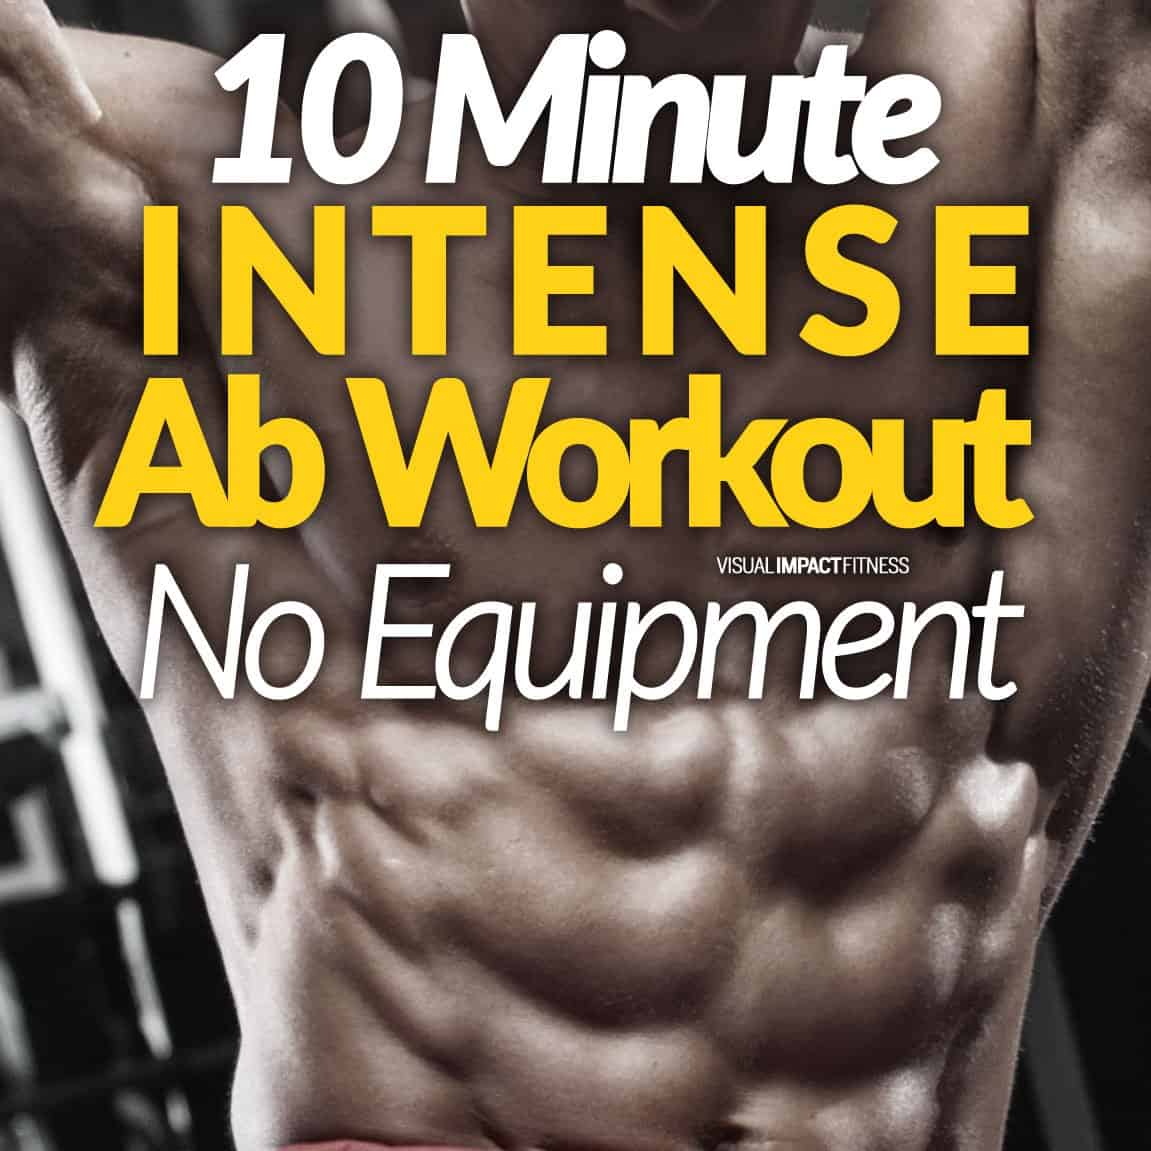 10 Minute Intense Ab Workout (No Equipment)